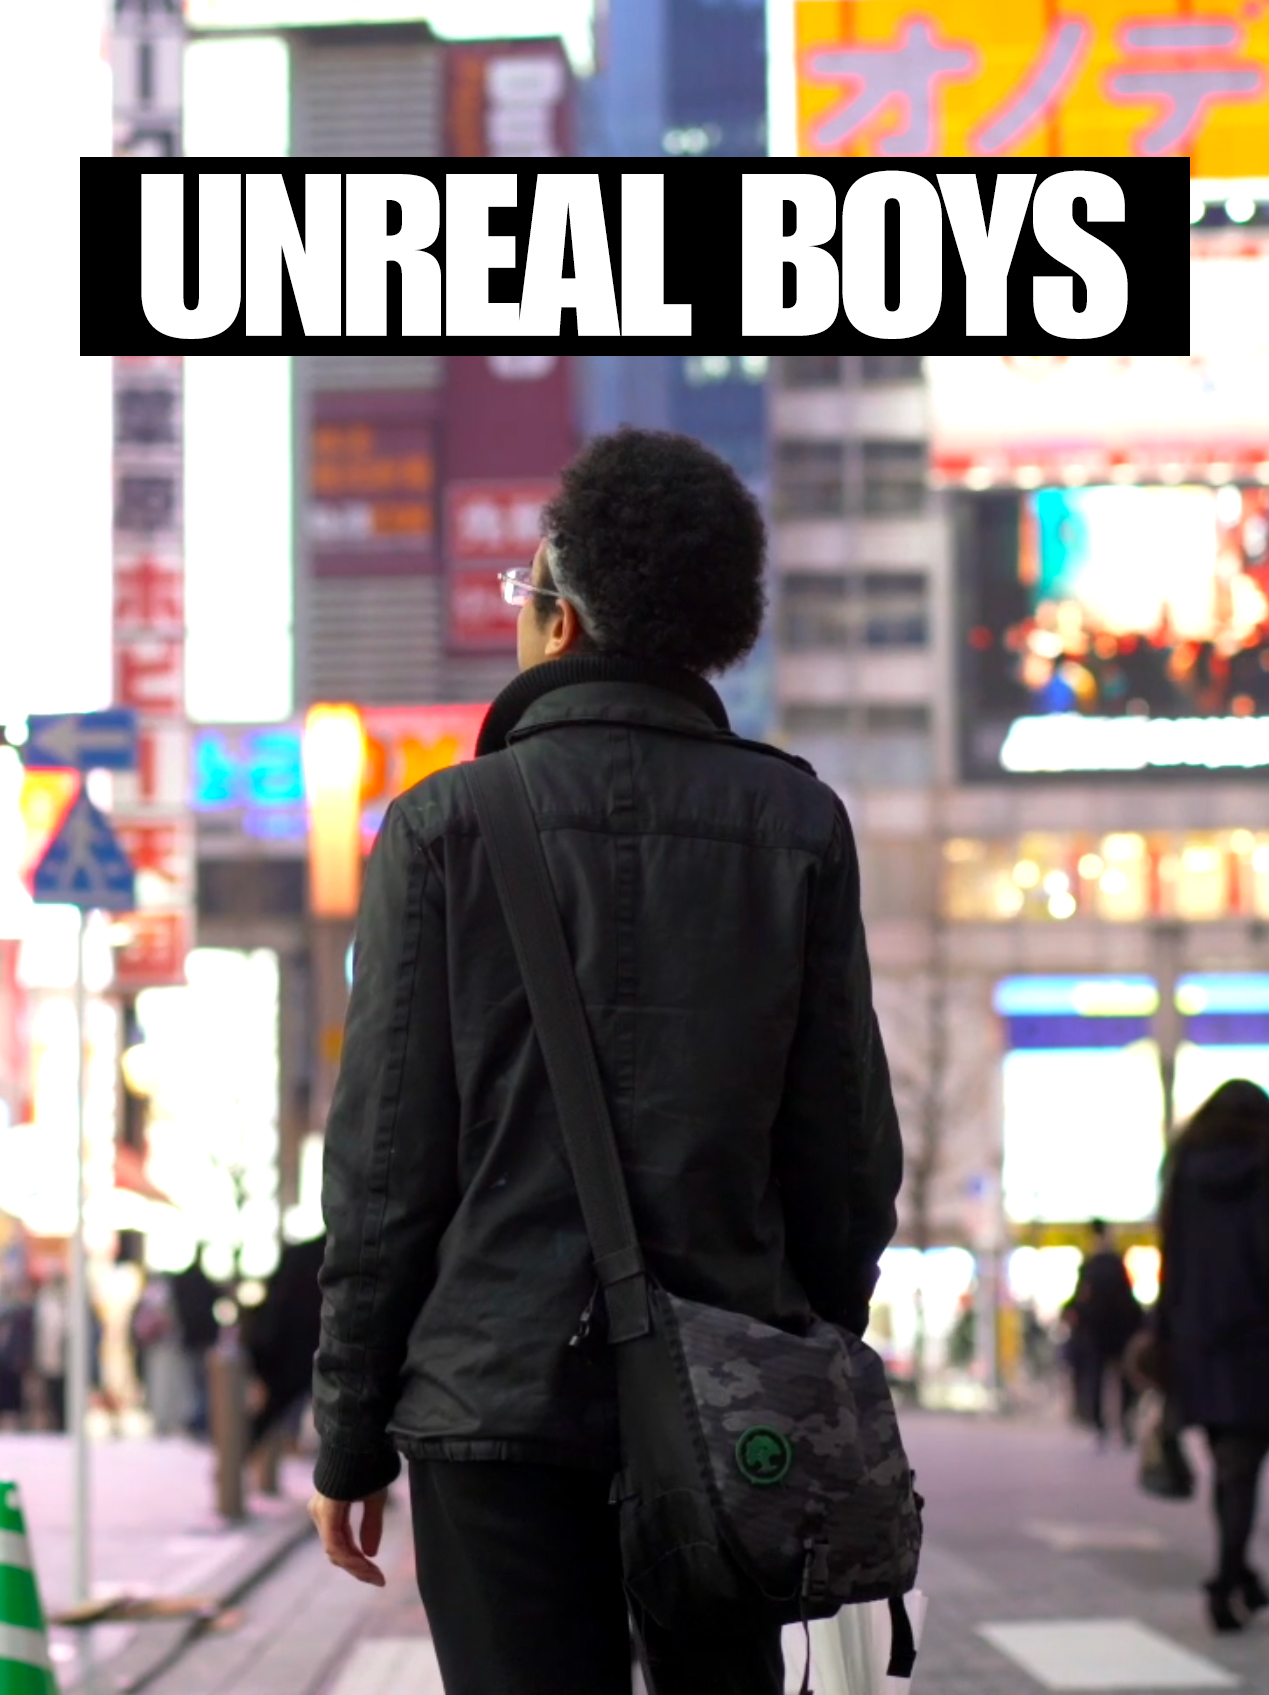 Unreal Boys - a film about shotacon